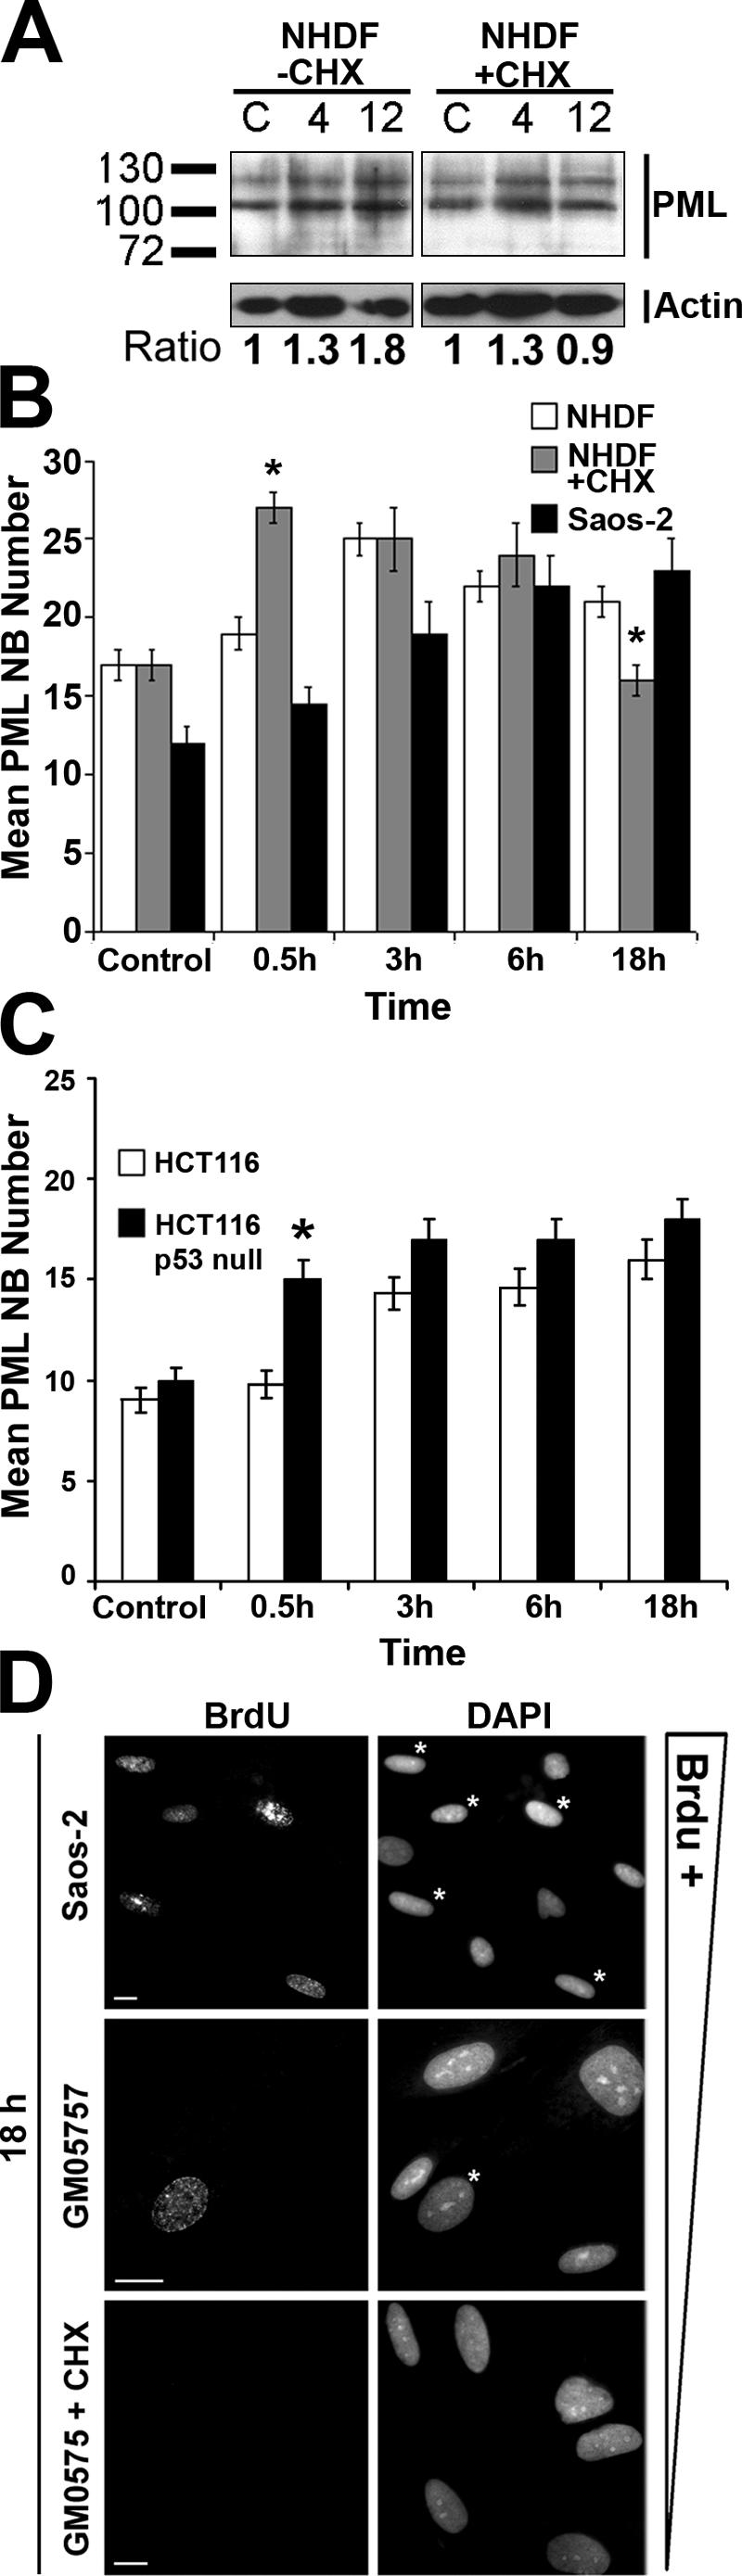 The increase in PML NB number in response to DSBs is independent of new protein translation and p53 . NHDF cells (GM05757) in the presence or absence of 150 μM cycloheximide (CHX), Saos-2 human osteosarcoma cells, and isogenic HCT116 human colon carcinoma cells (+ or − p53) were treated with etoposide (20 μM VP16) for 30 min (*, P